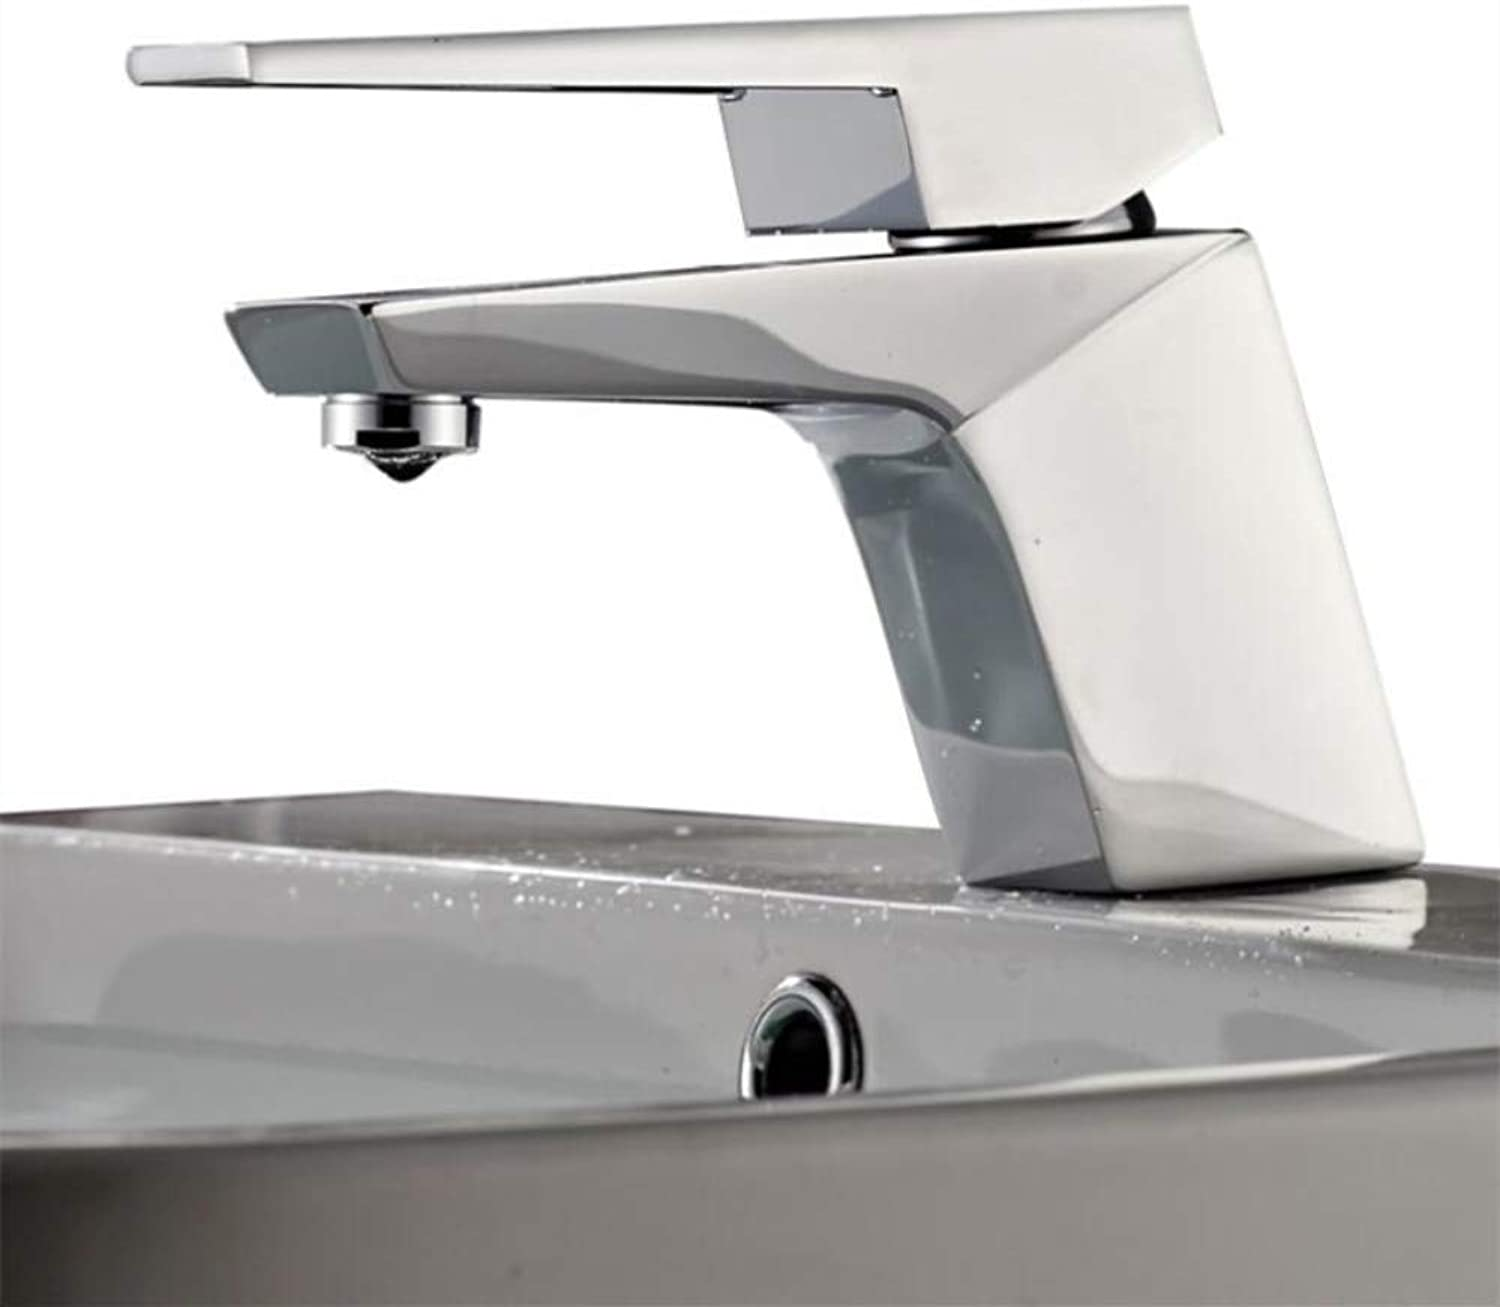 Kitchen Sink Taps Bathroom Sink Taps Basin Faucet Brass Chrome Faucet Brush Nickel Sink Mixer Tap Vanity Hot Cold Water Bathroom Faucets